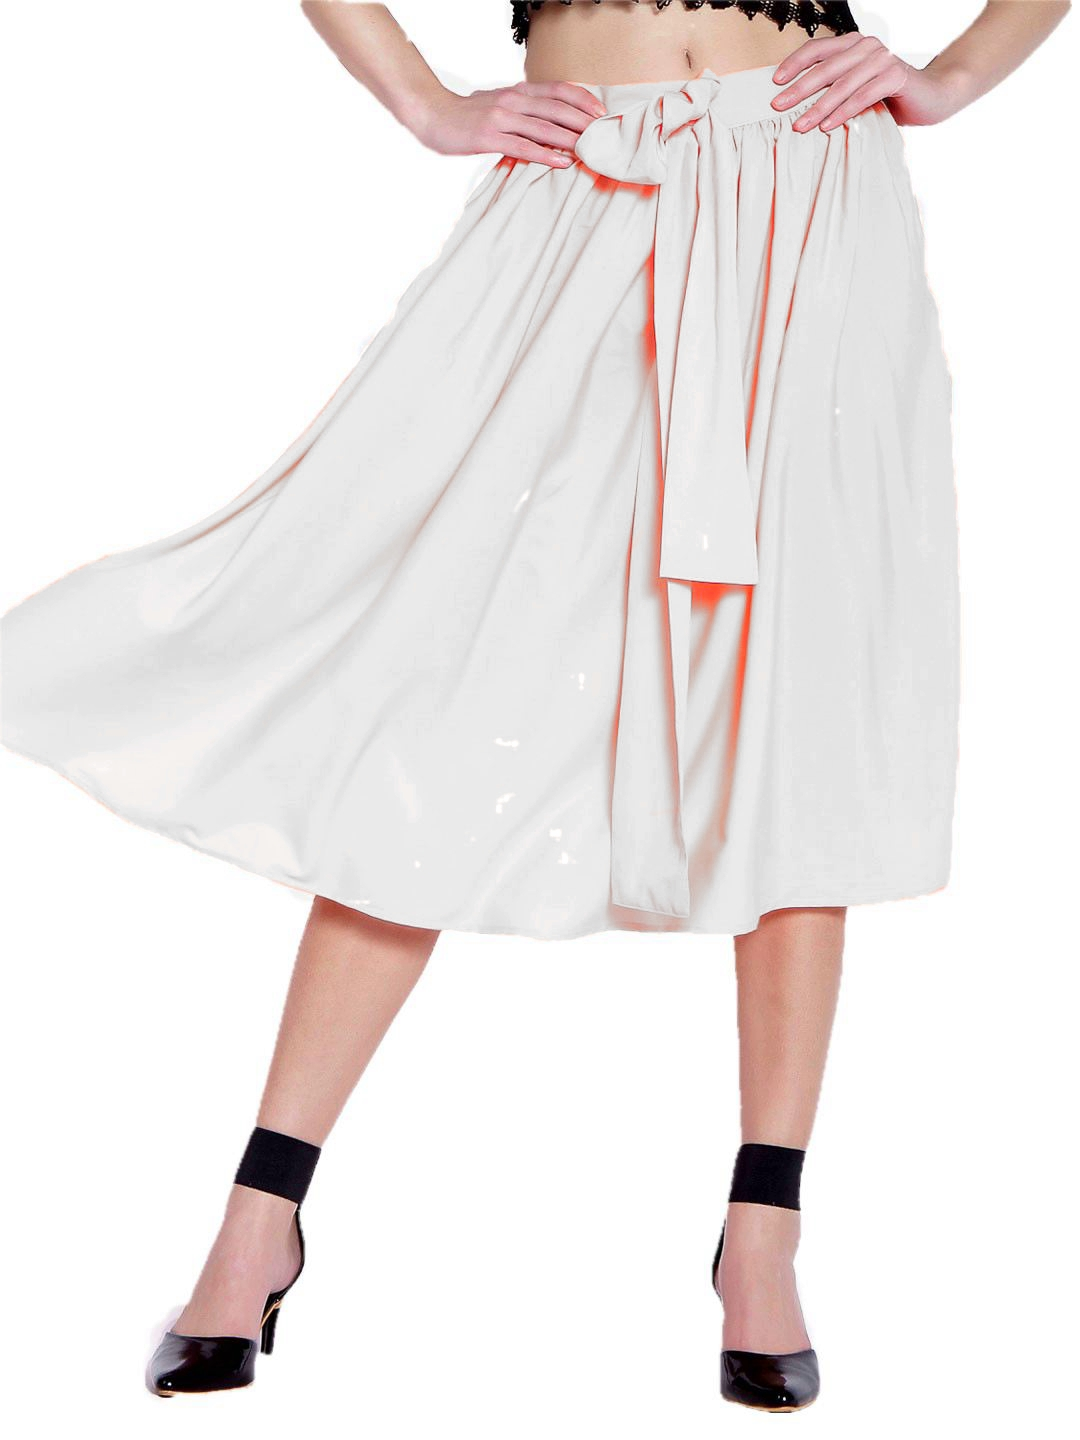 Below Knee Pleated Frill Skirt in White